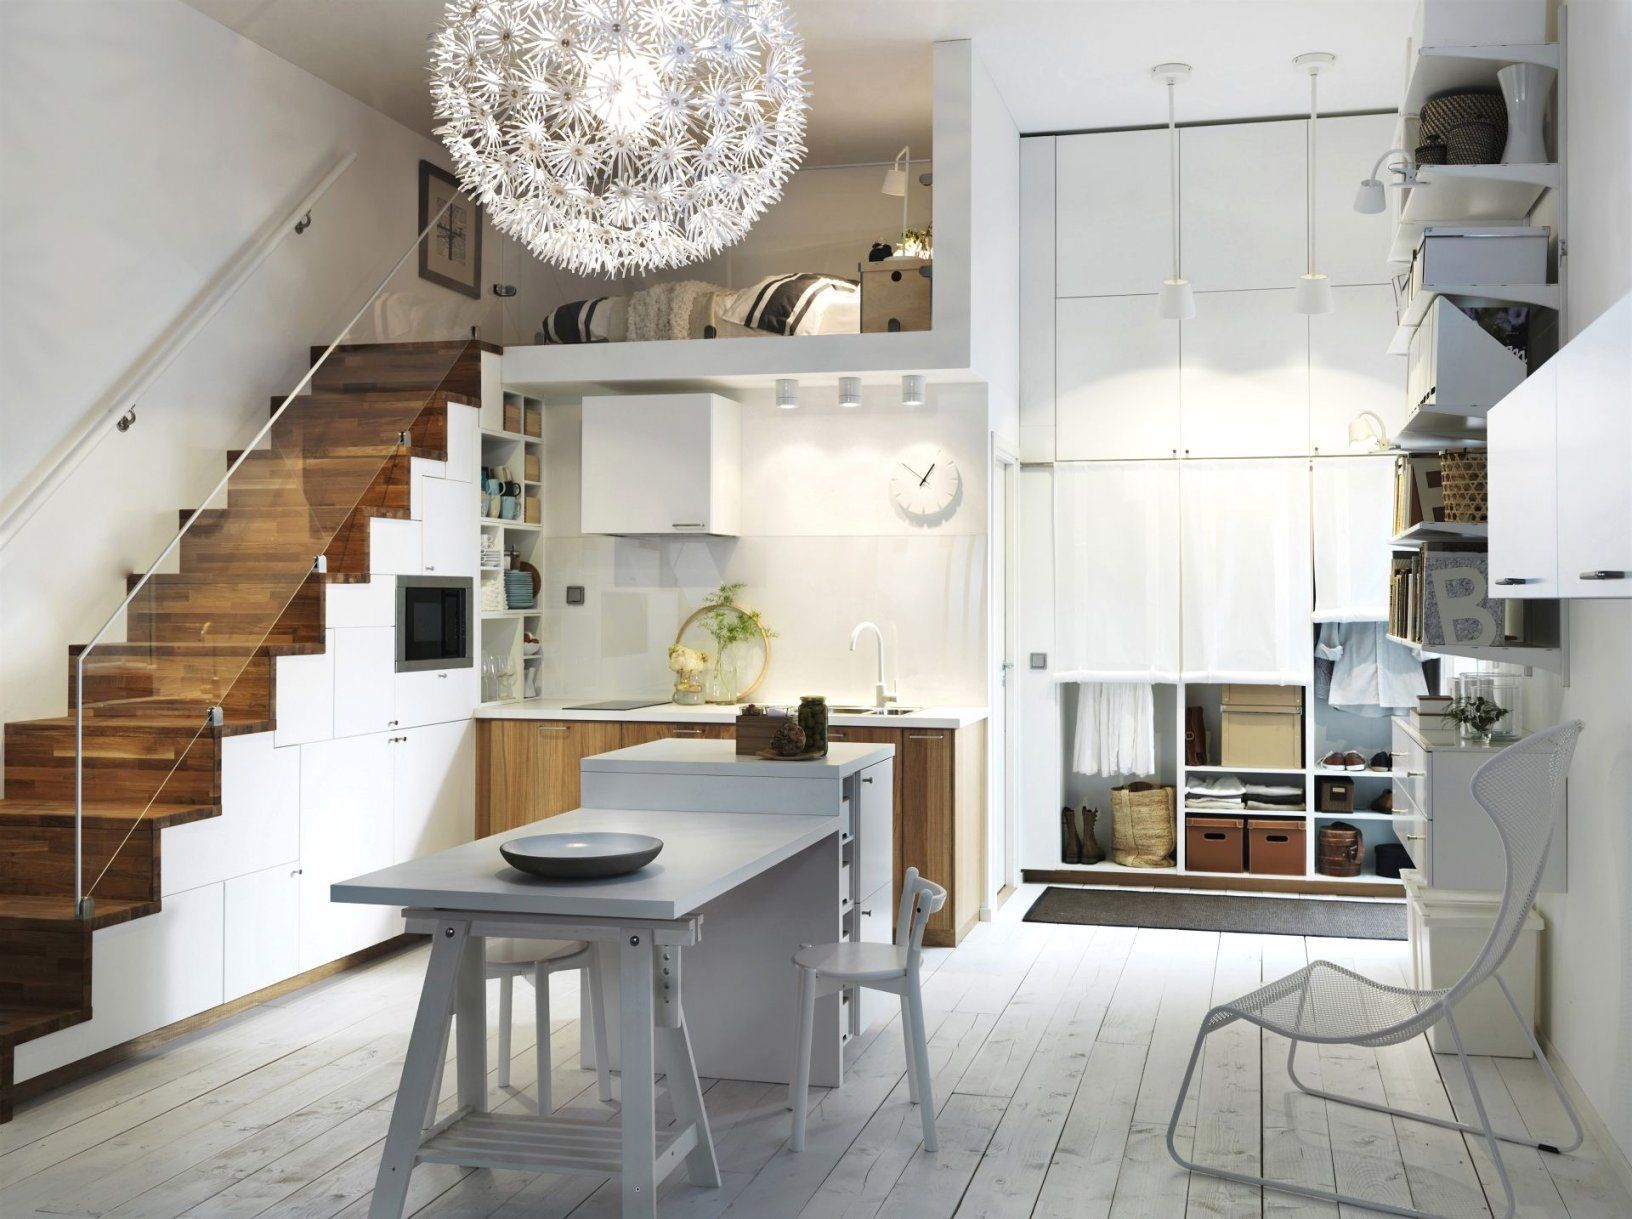 30 Qm Wohnung Einrichten Haus Design Ideen Inside Wohndesign Ideen Wohnungeinrichten Haus Stairs In Kitchen Small Space Kitchen Scandinavian Kitchen Design